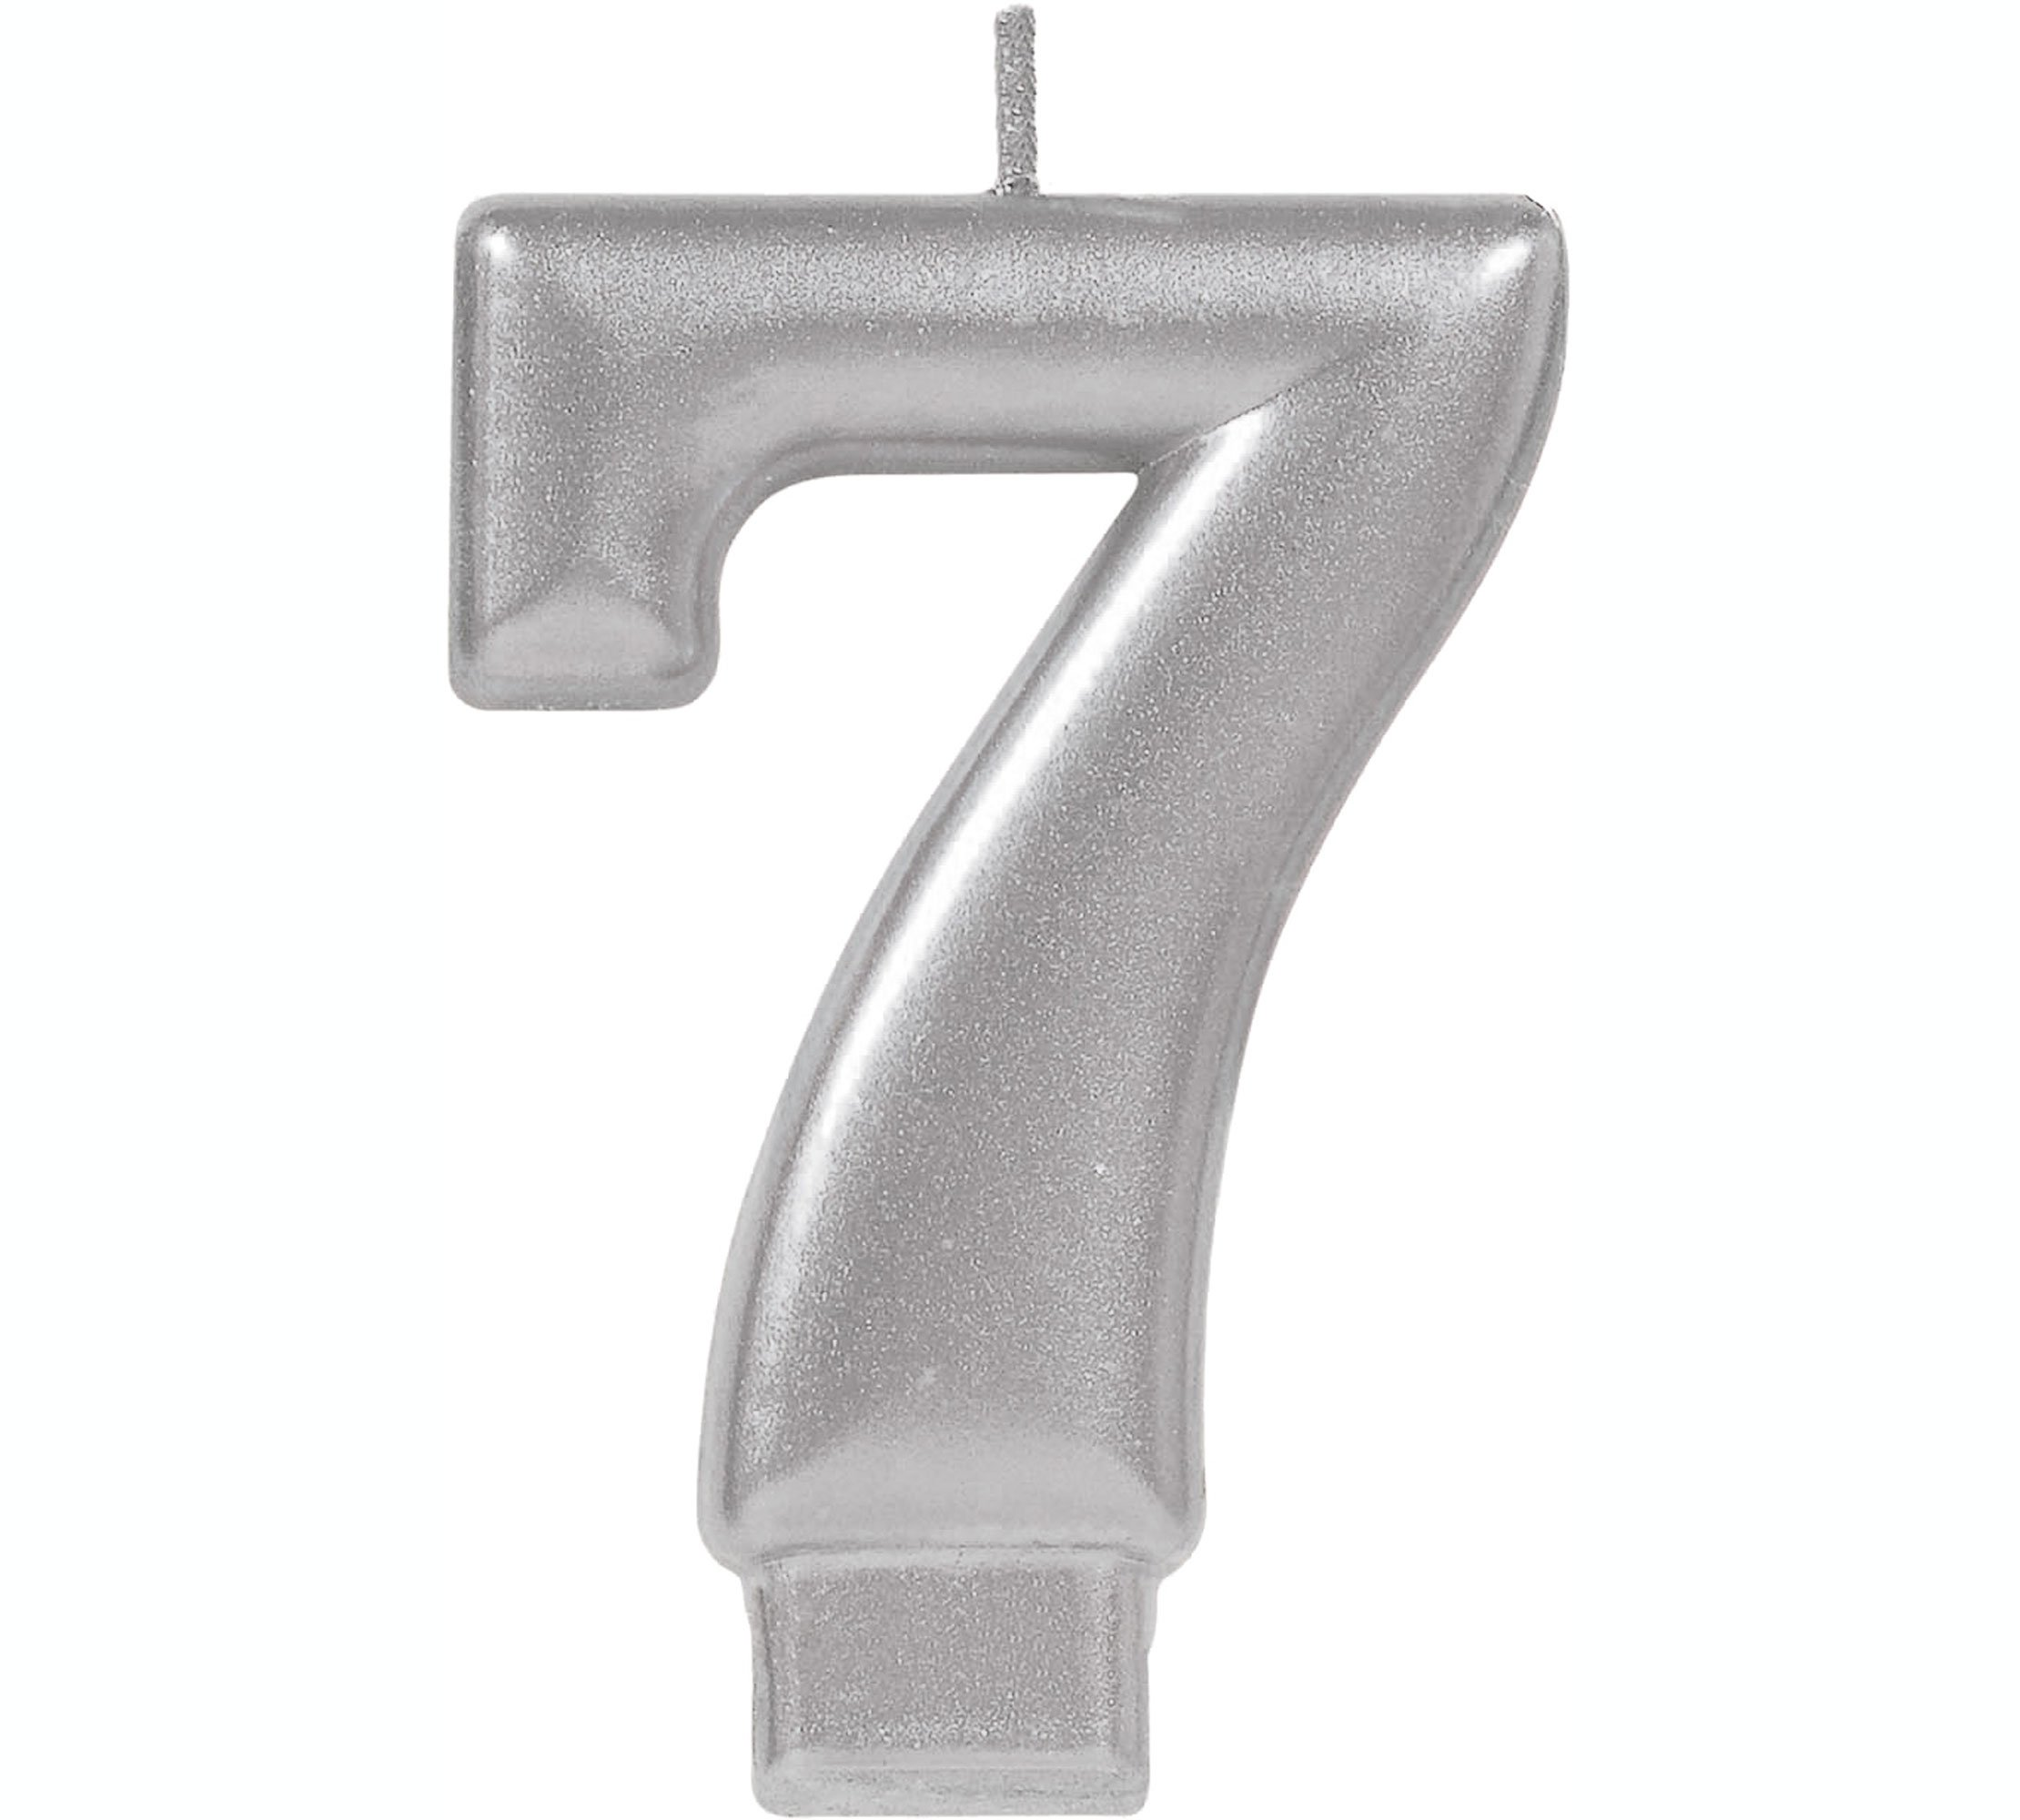 #7 Silver Metallic Numeral Moulded Candle